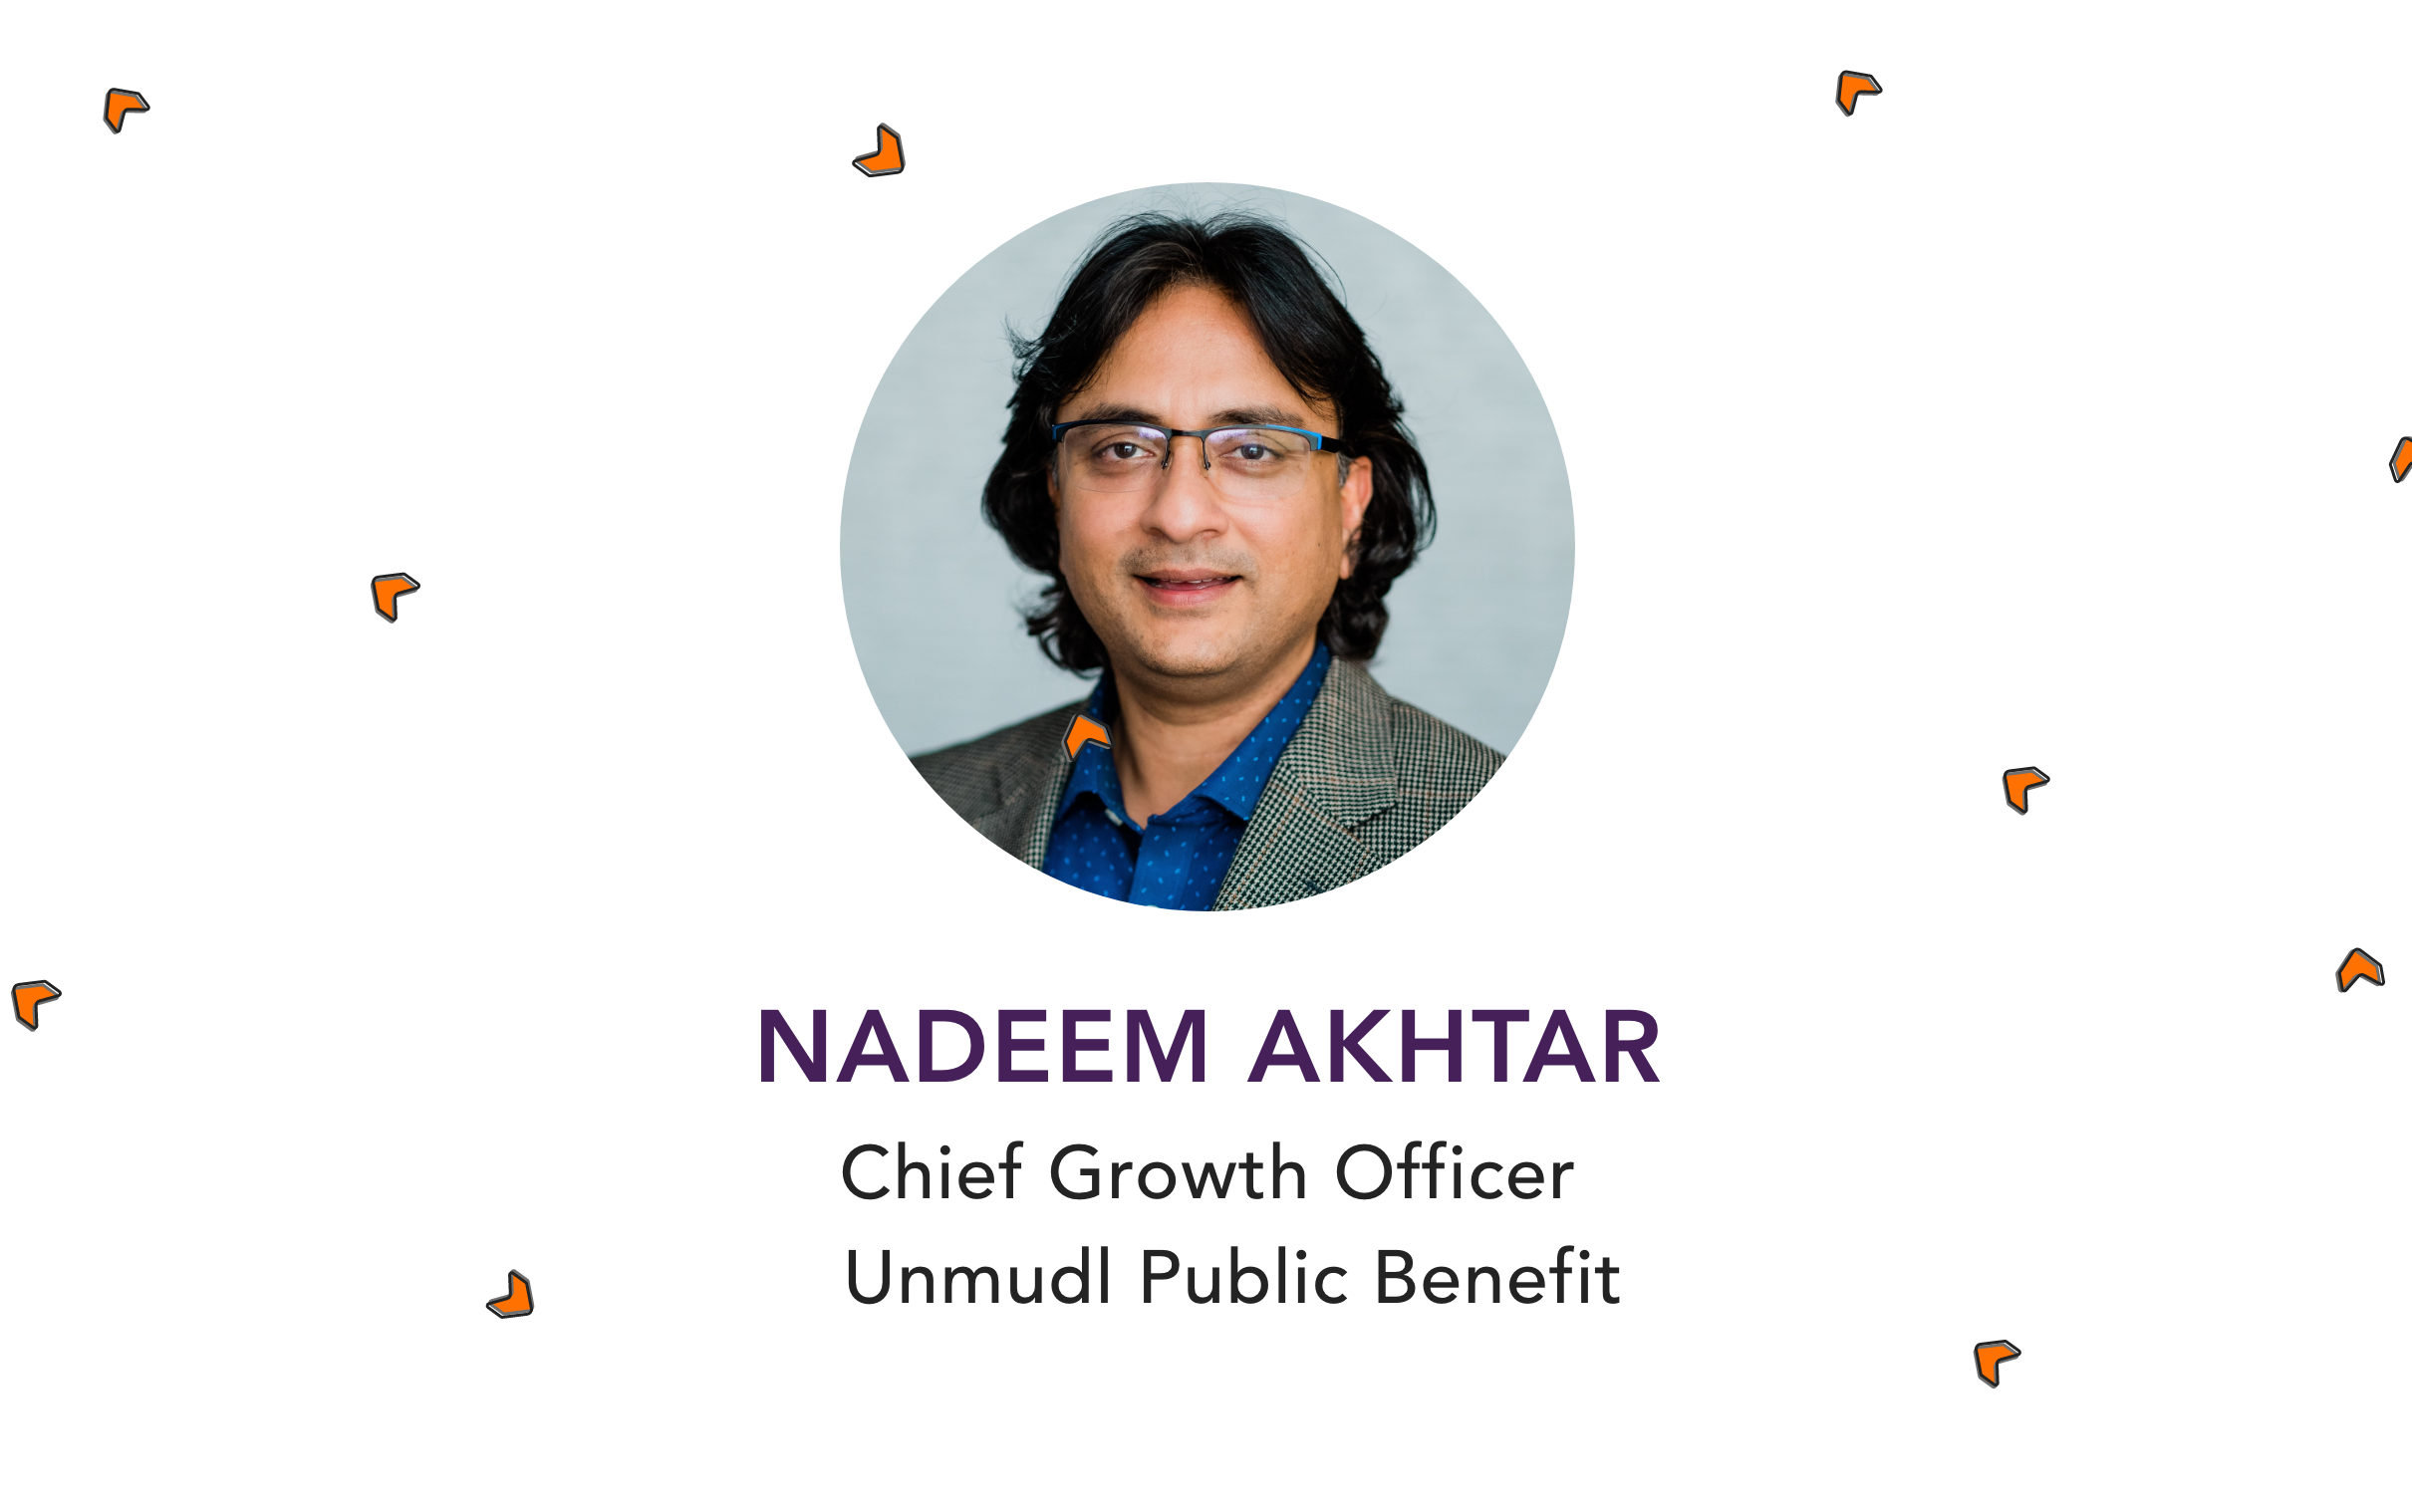 Unmudl Public Benefit Appoints Nadeem Akhtar as Chief Growth Officer